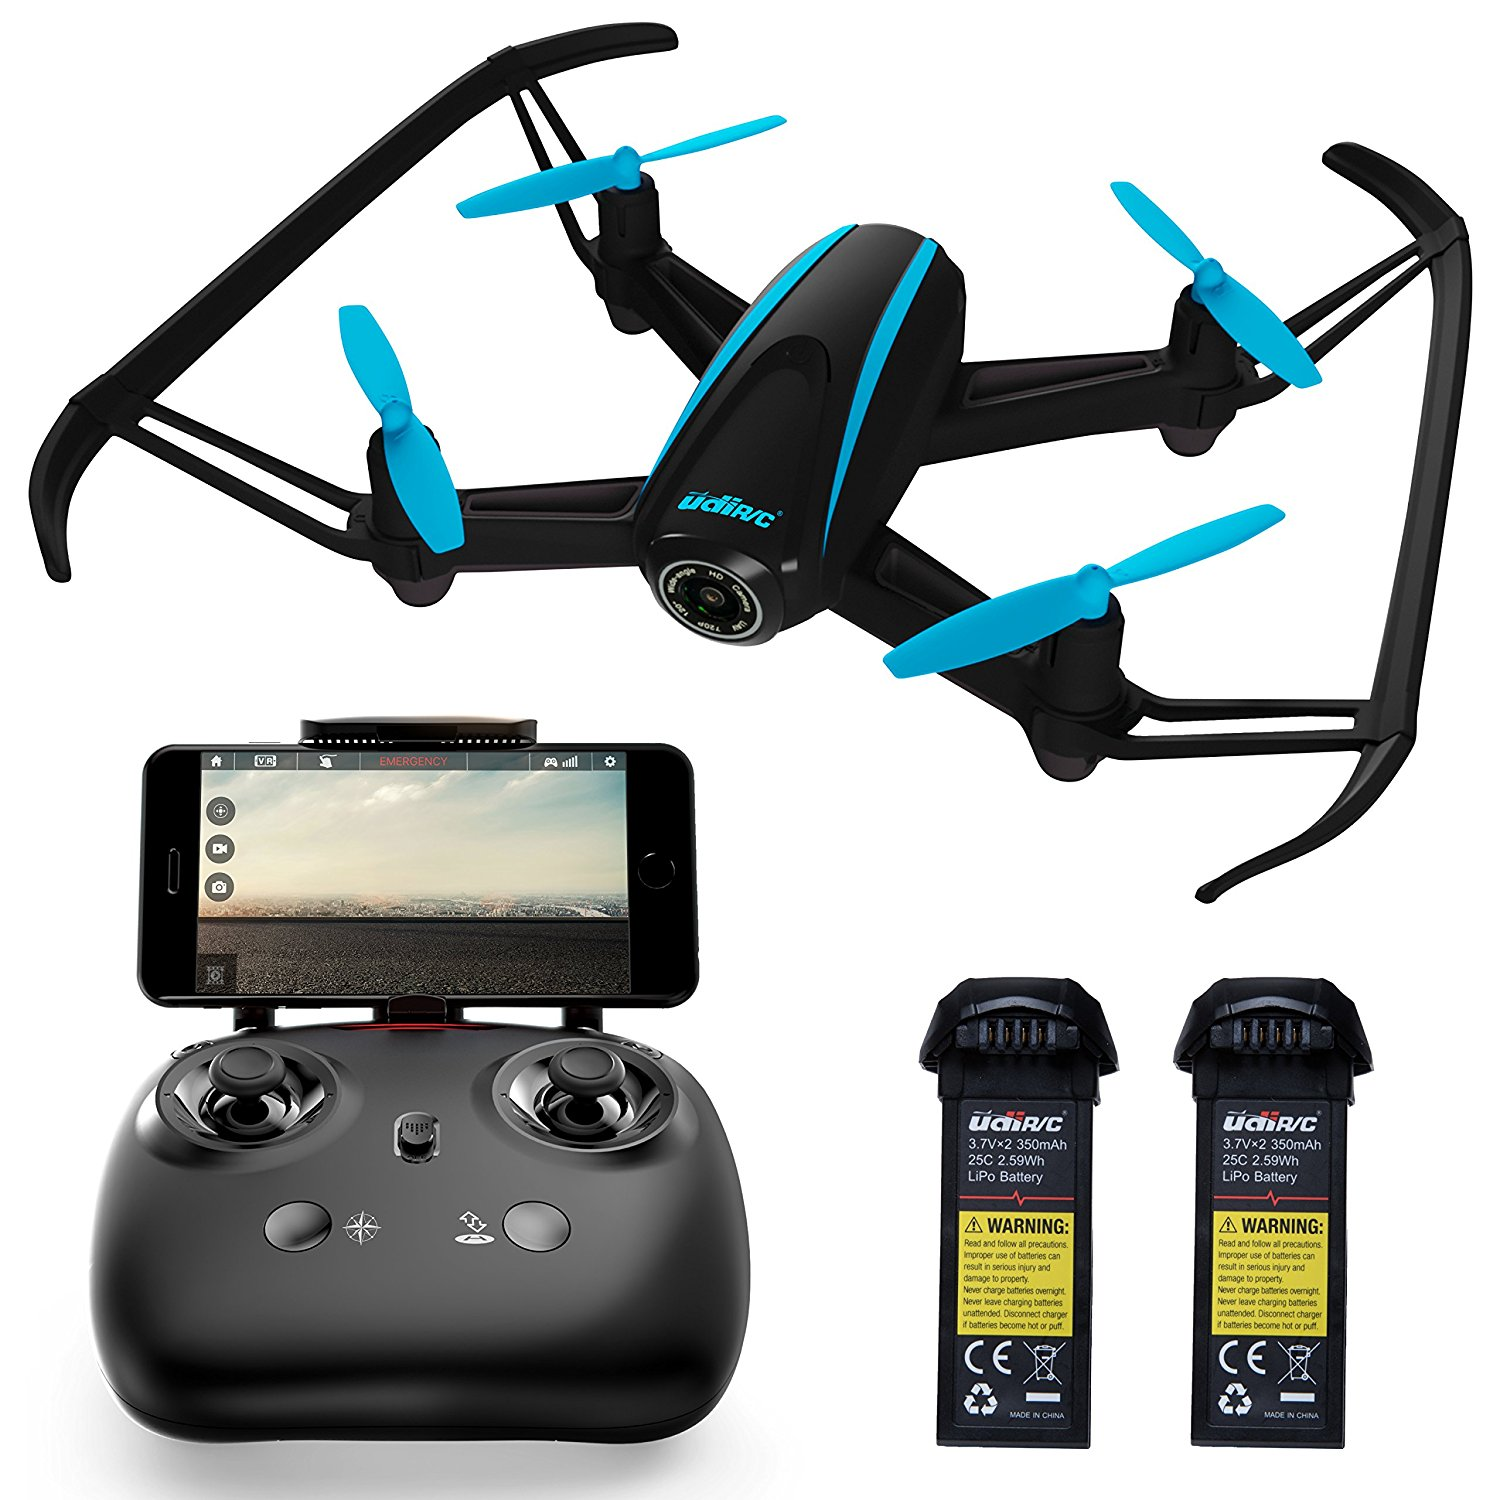 2. Force1 RC Camera Drones for Kids & Pros